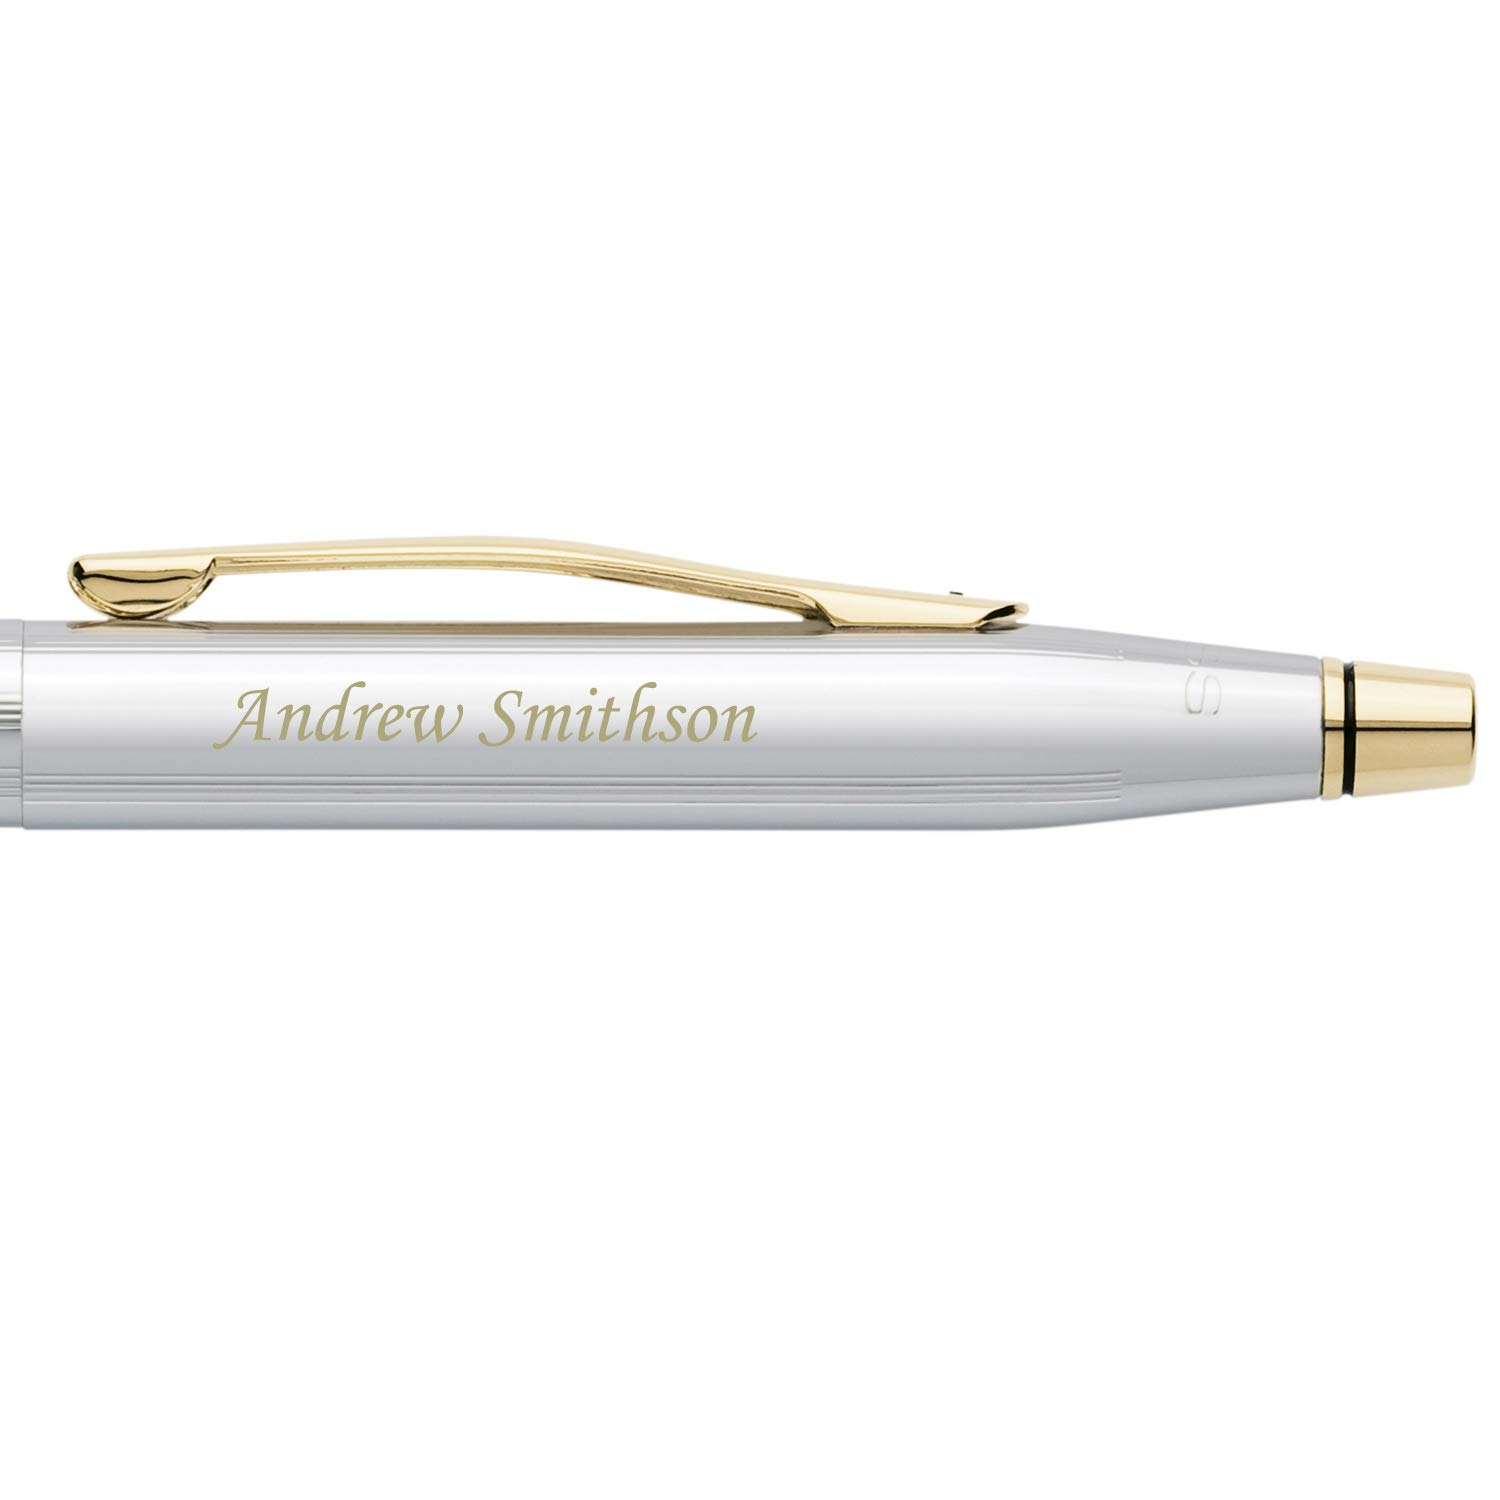 Dayspring Pens   Engraved/Personalized Cross Classic Century Medalist Ballpoint Pen, Chrome and 23 Karat Gold Plated Trim 3302. Custom Engraved Fast 1 day engraving time. by Dayspring Pens (Image #4)